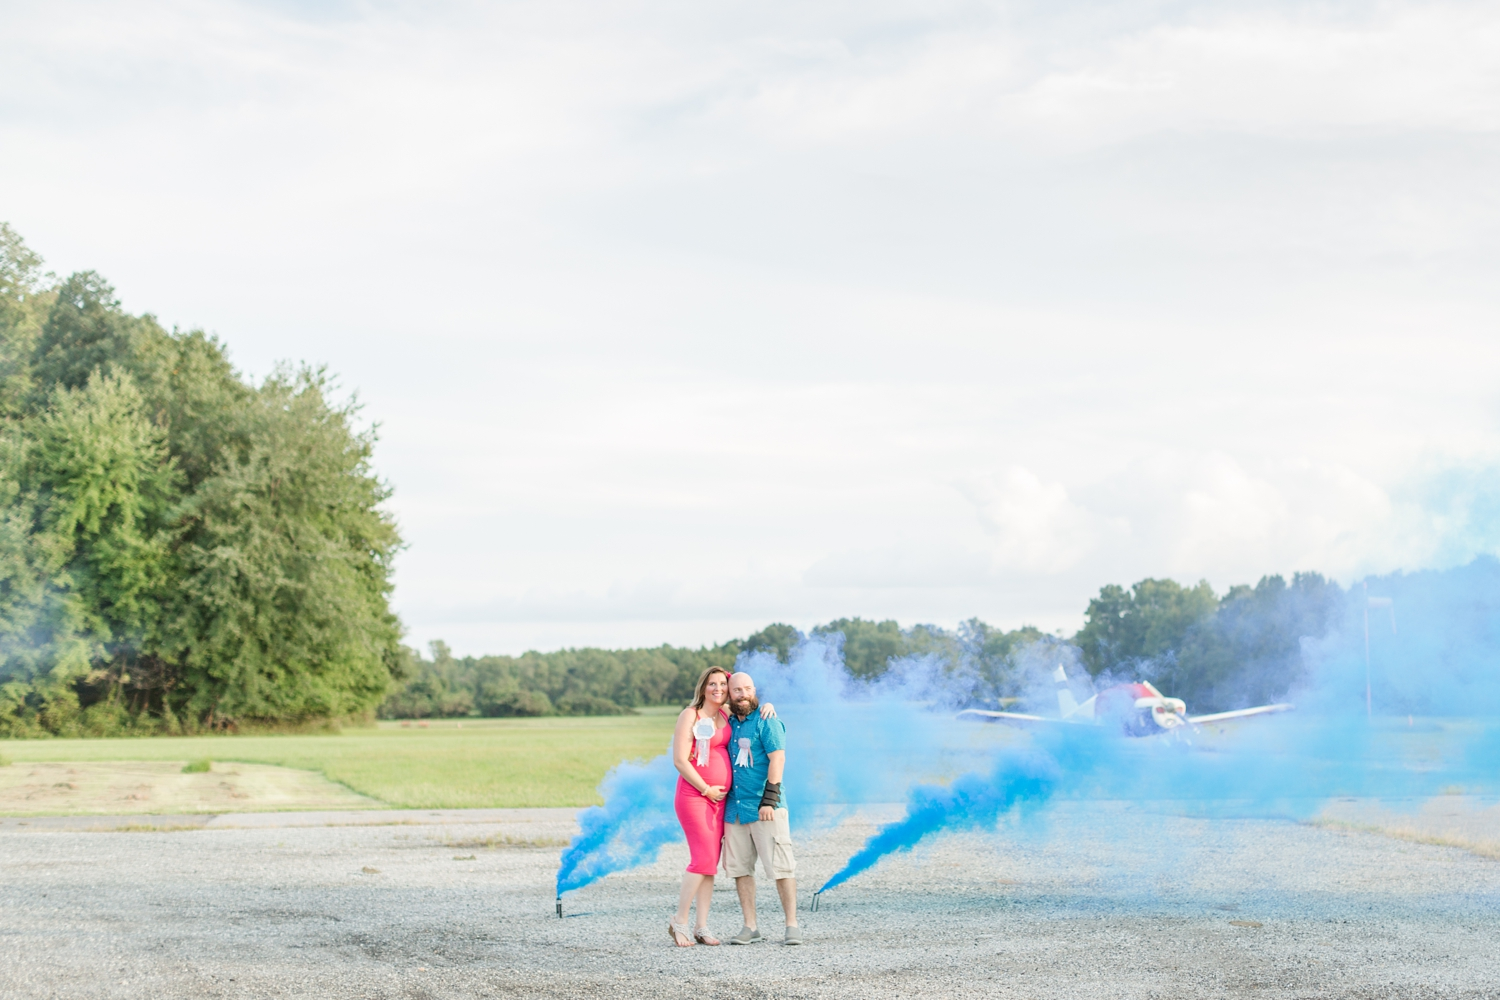 Calvert Gender Reveal-63_Baltimore-Maryland-Gender-Reveal-Maternity-photographer-anna-grace-photography-photo.jpg